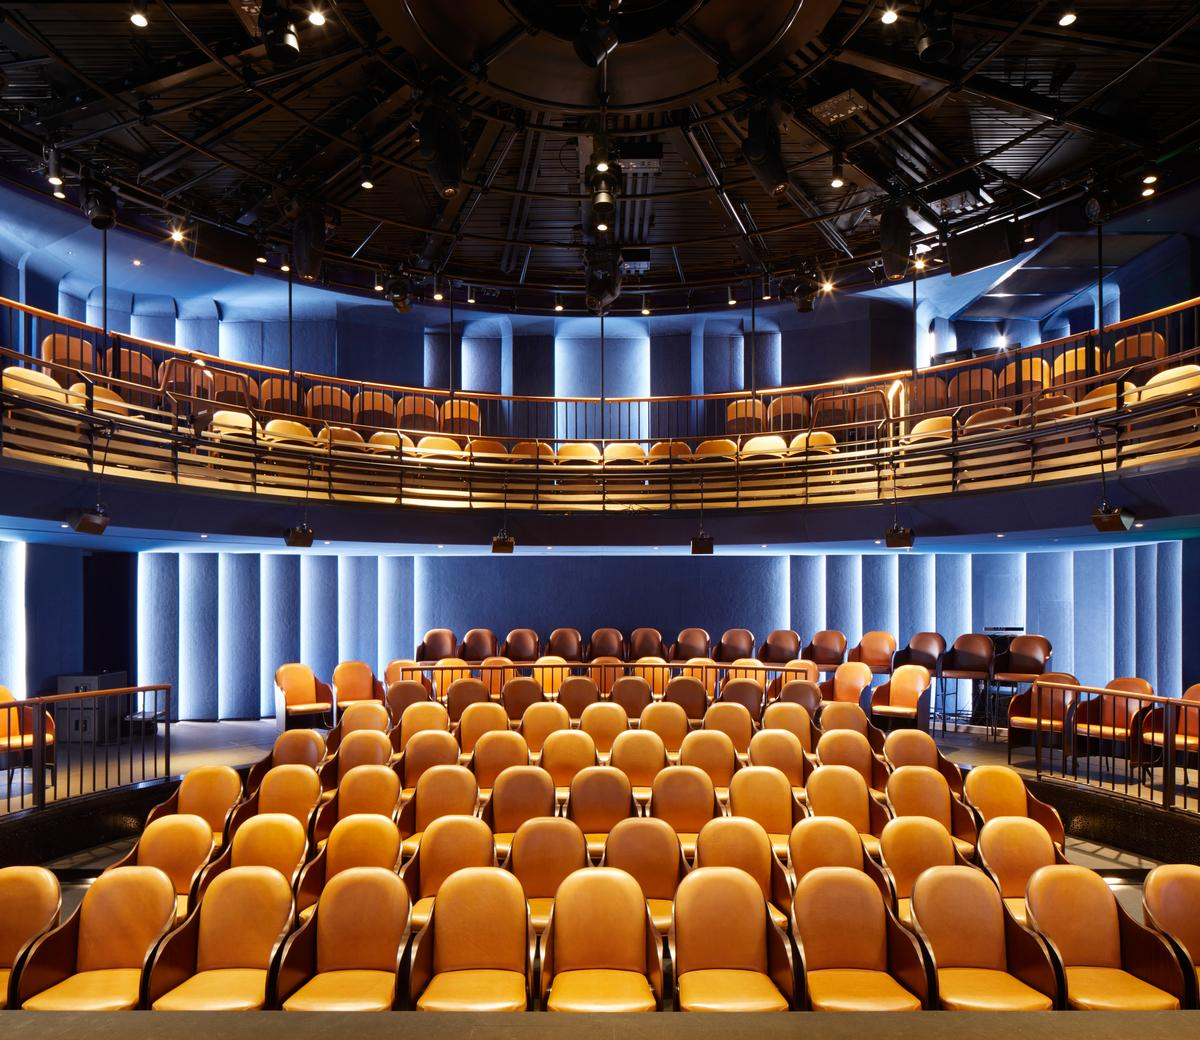 The cylindrical auditorium was developed with theatre specialists Charcoalblue / SODA Studio